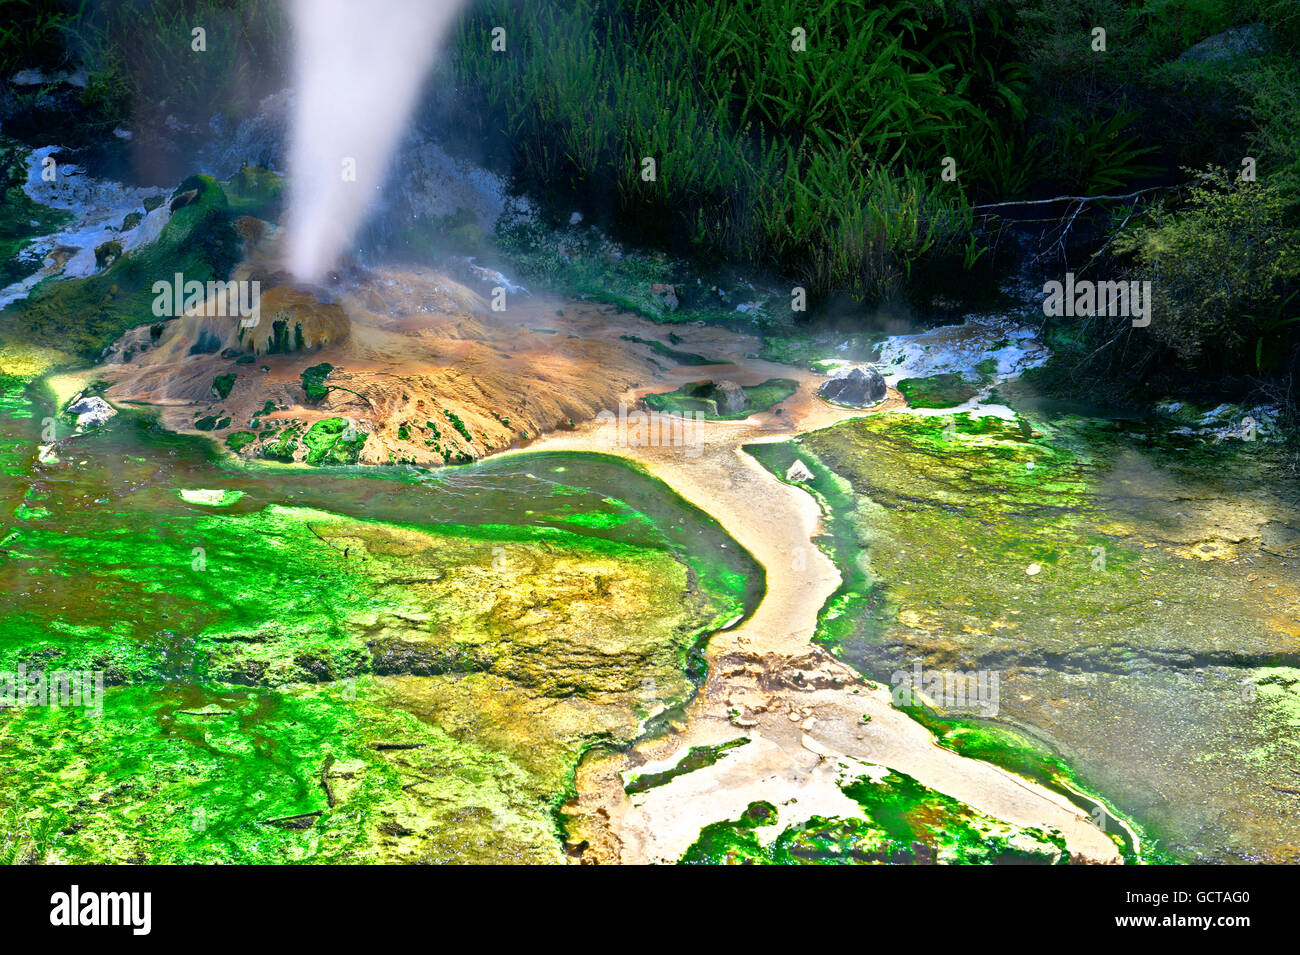 Hot steam flowing out of a volcanic vent surrounded by green algae, Waimangu, New Zealand - Stock Image